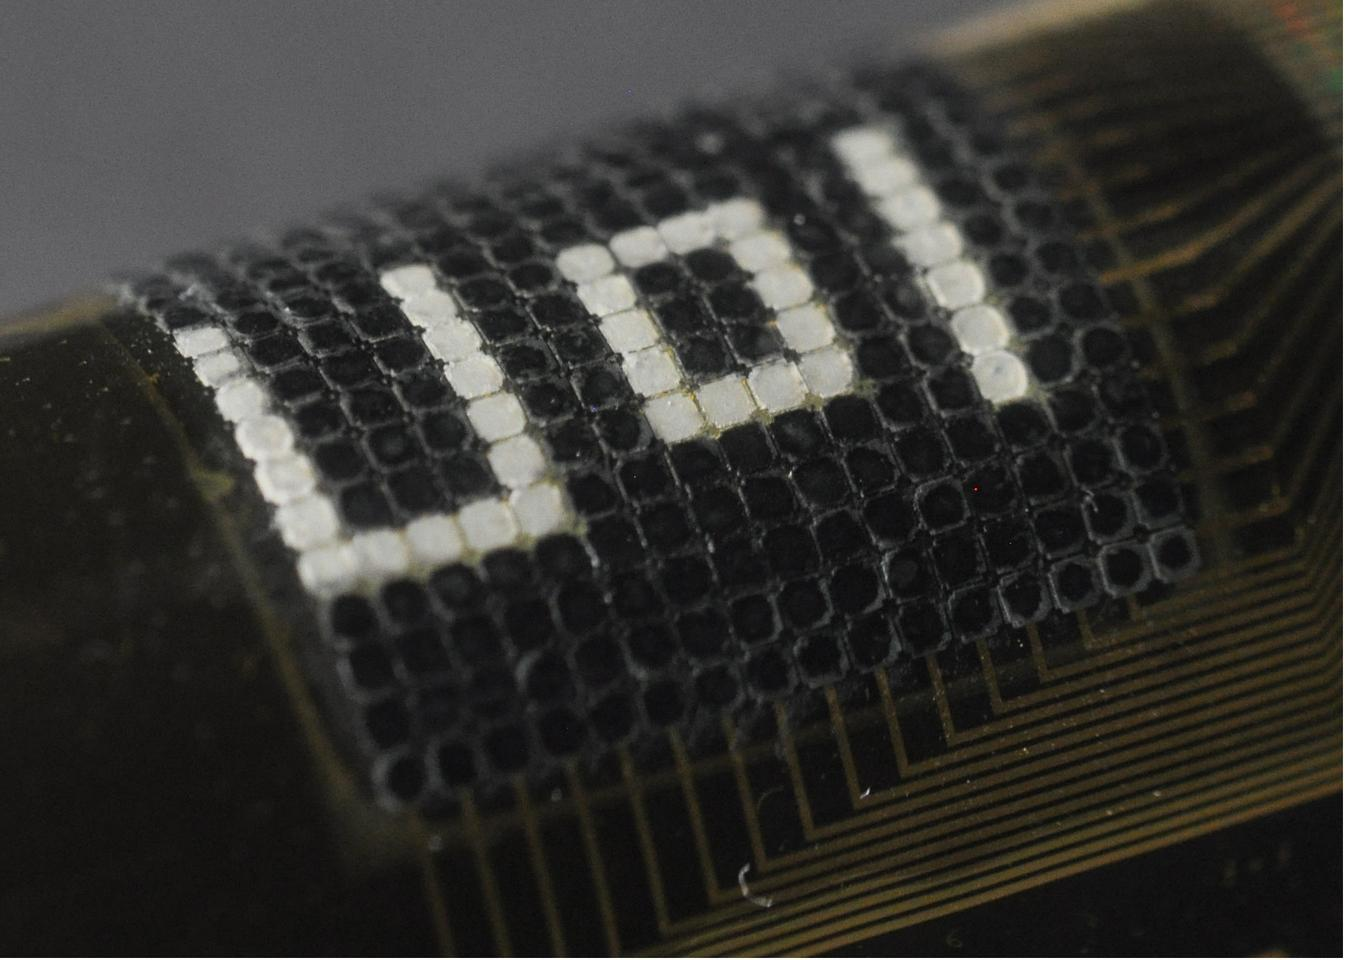 A flexible artificial skin is designed to wrap around objects and autonomously camouflage itself (Photo: University of Houston)